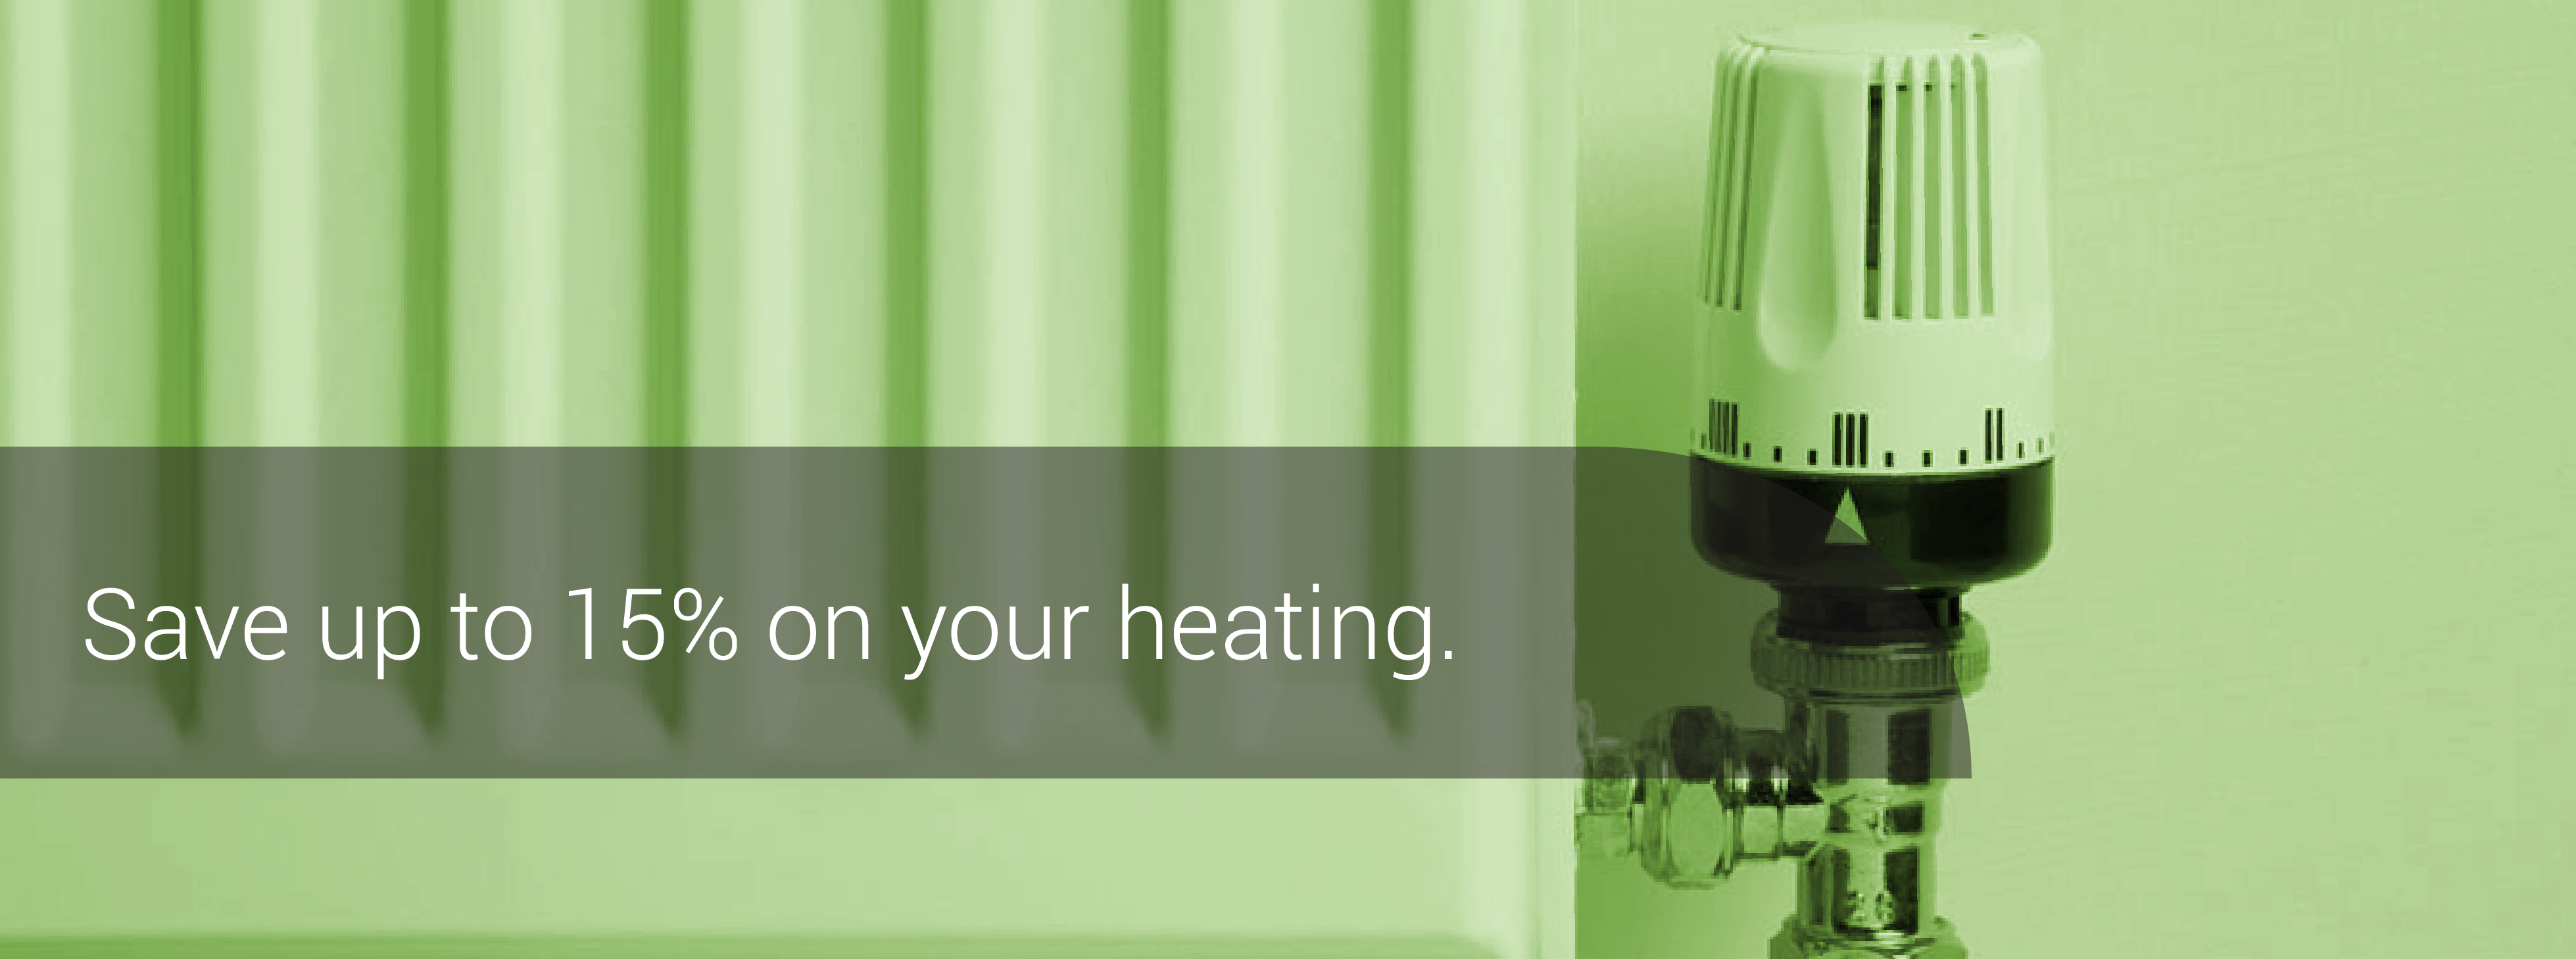 Save 15% on your heating